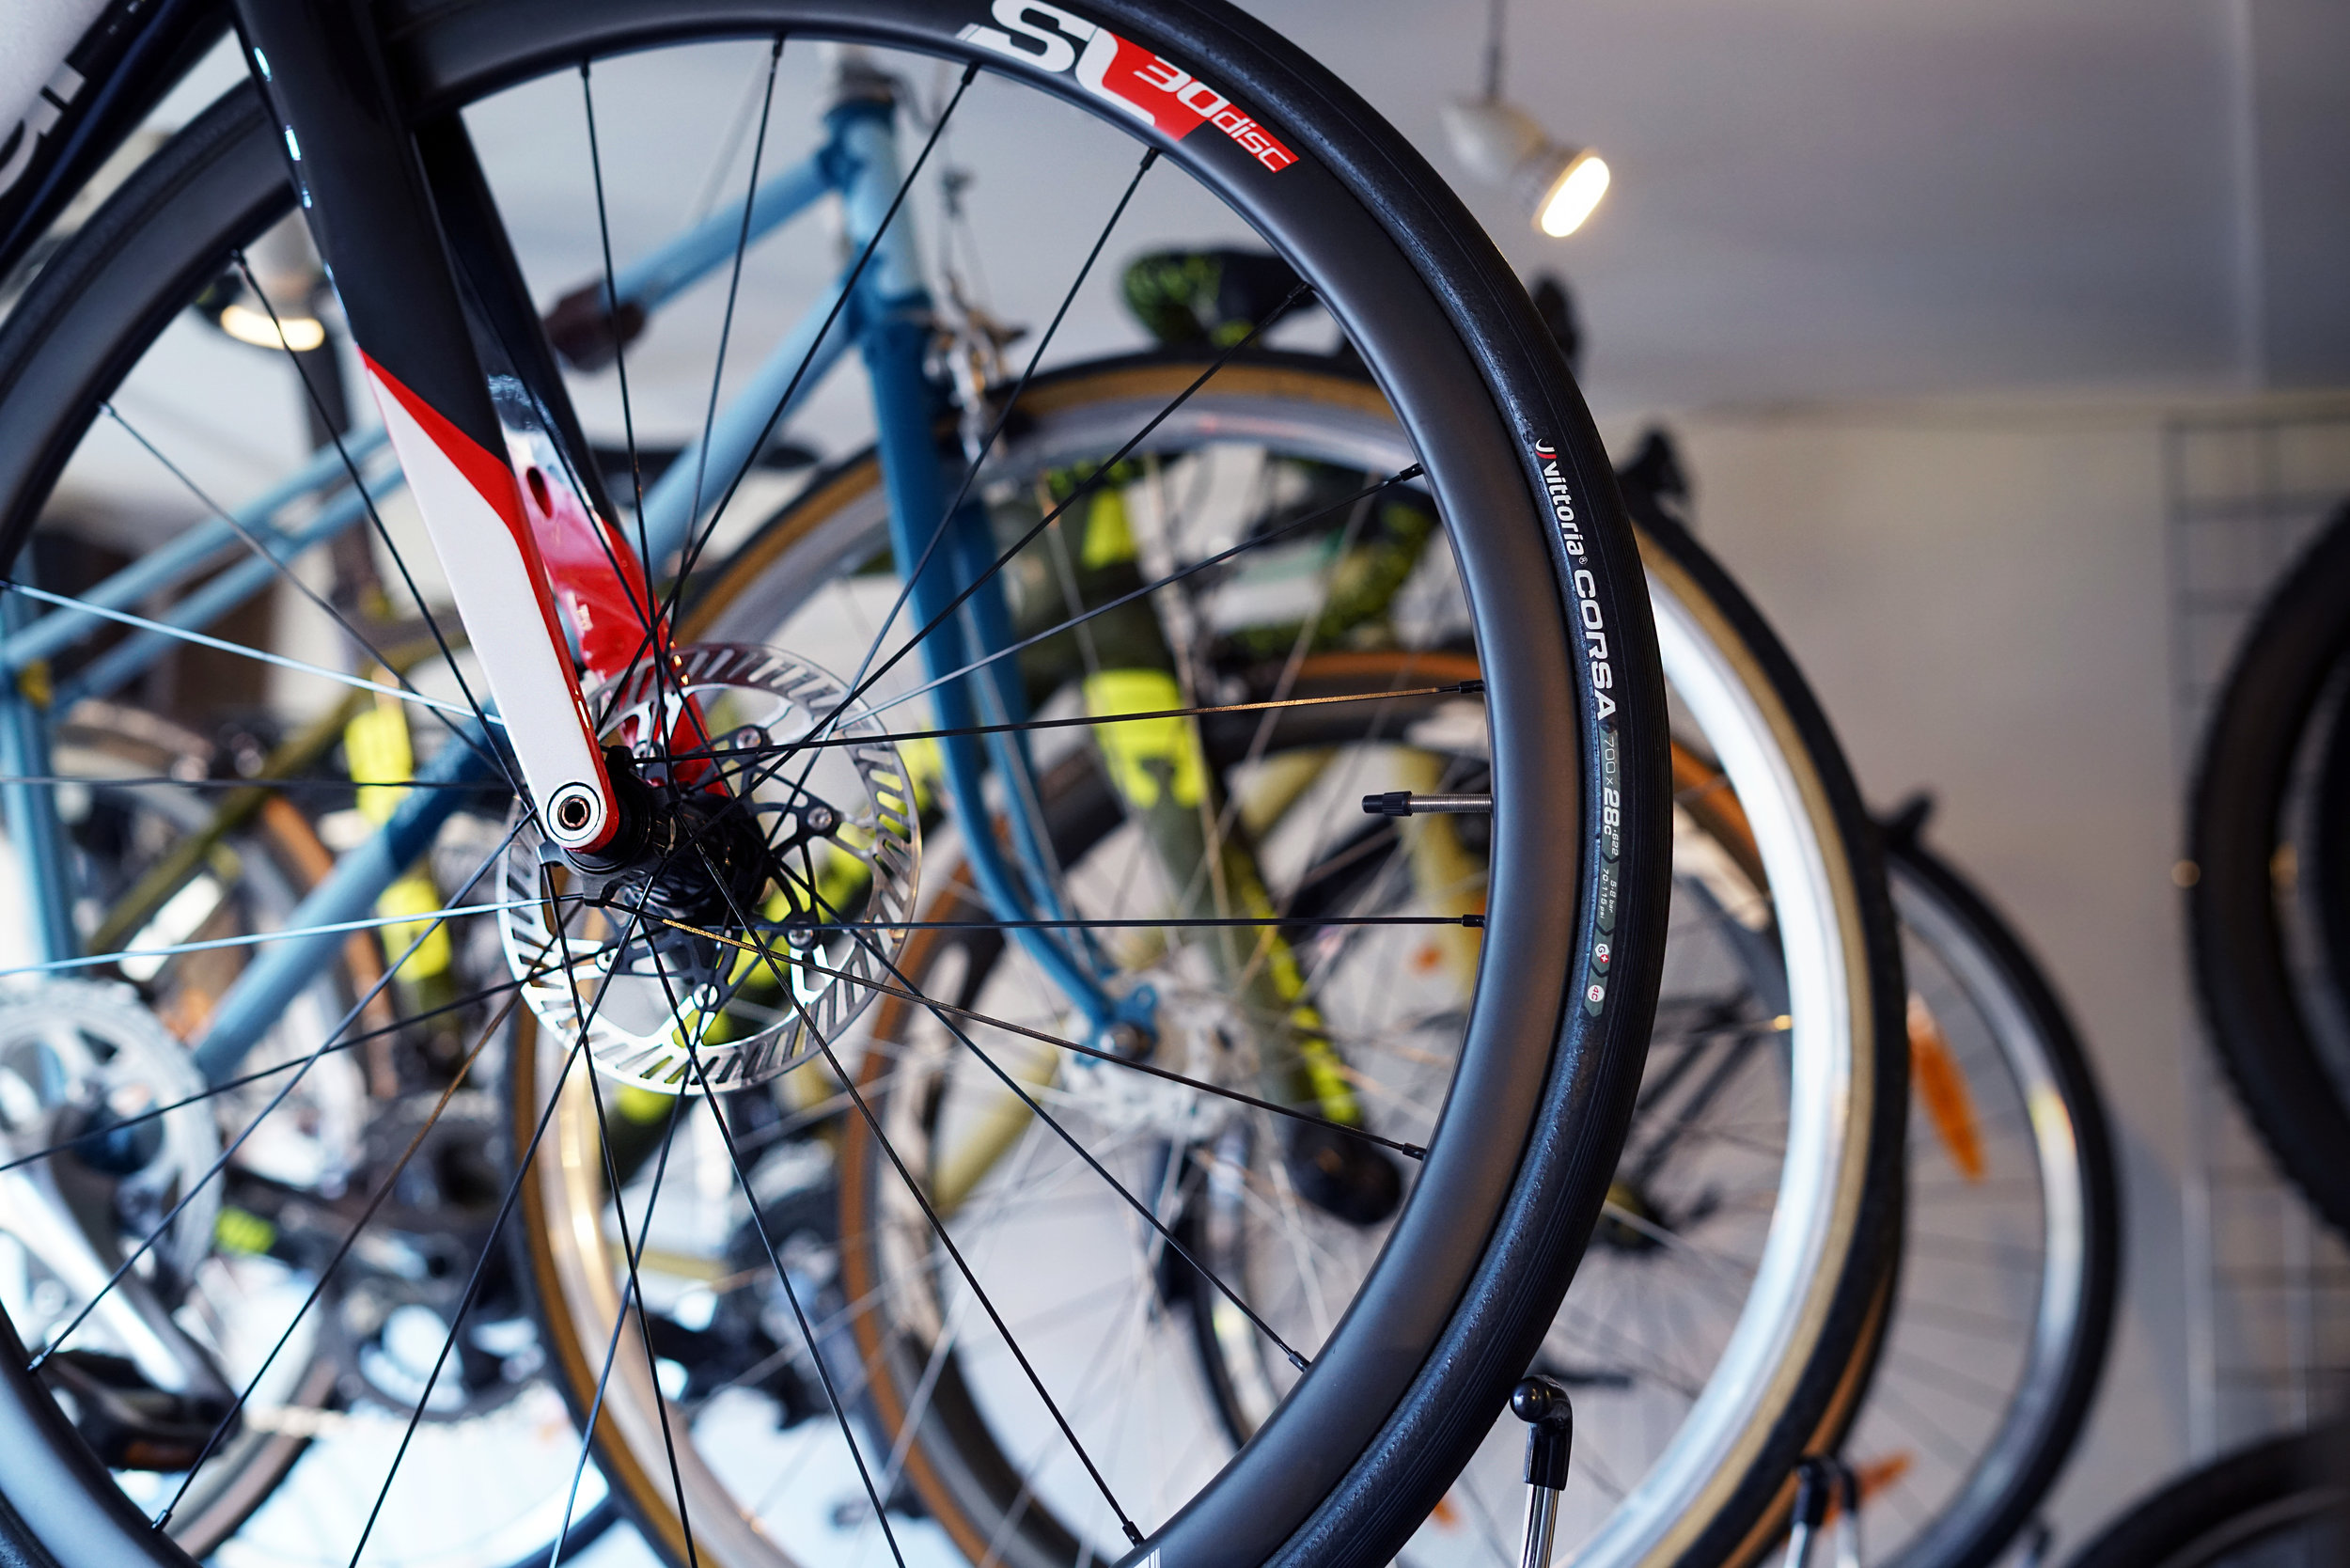 Bike service - We get asked all the time, what kind of stuff do we do, and really we service pretty much everything. All types of road bikes, mountain bikes, kids bikes, cheap bikes, really expensive bikes, heaps to ride to work on, or a much loved classic.